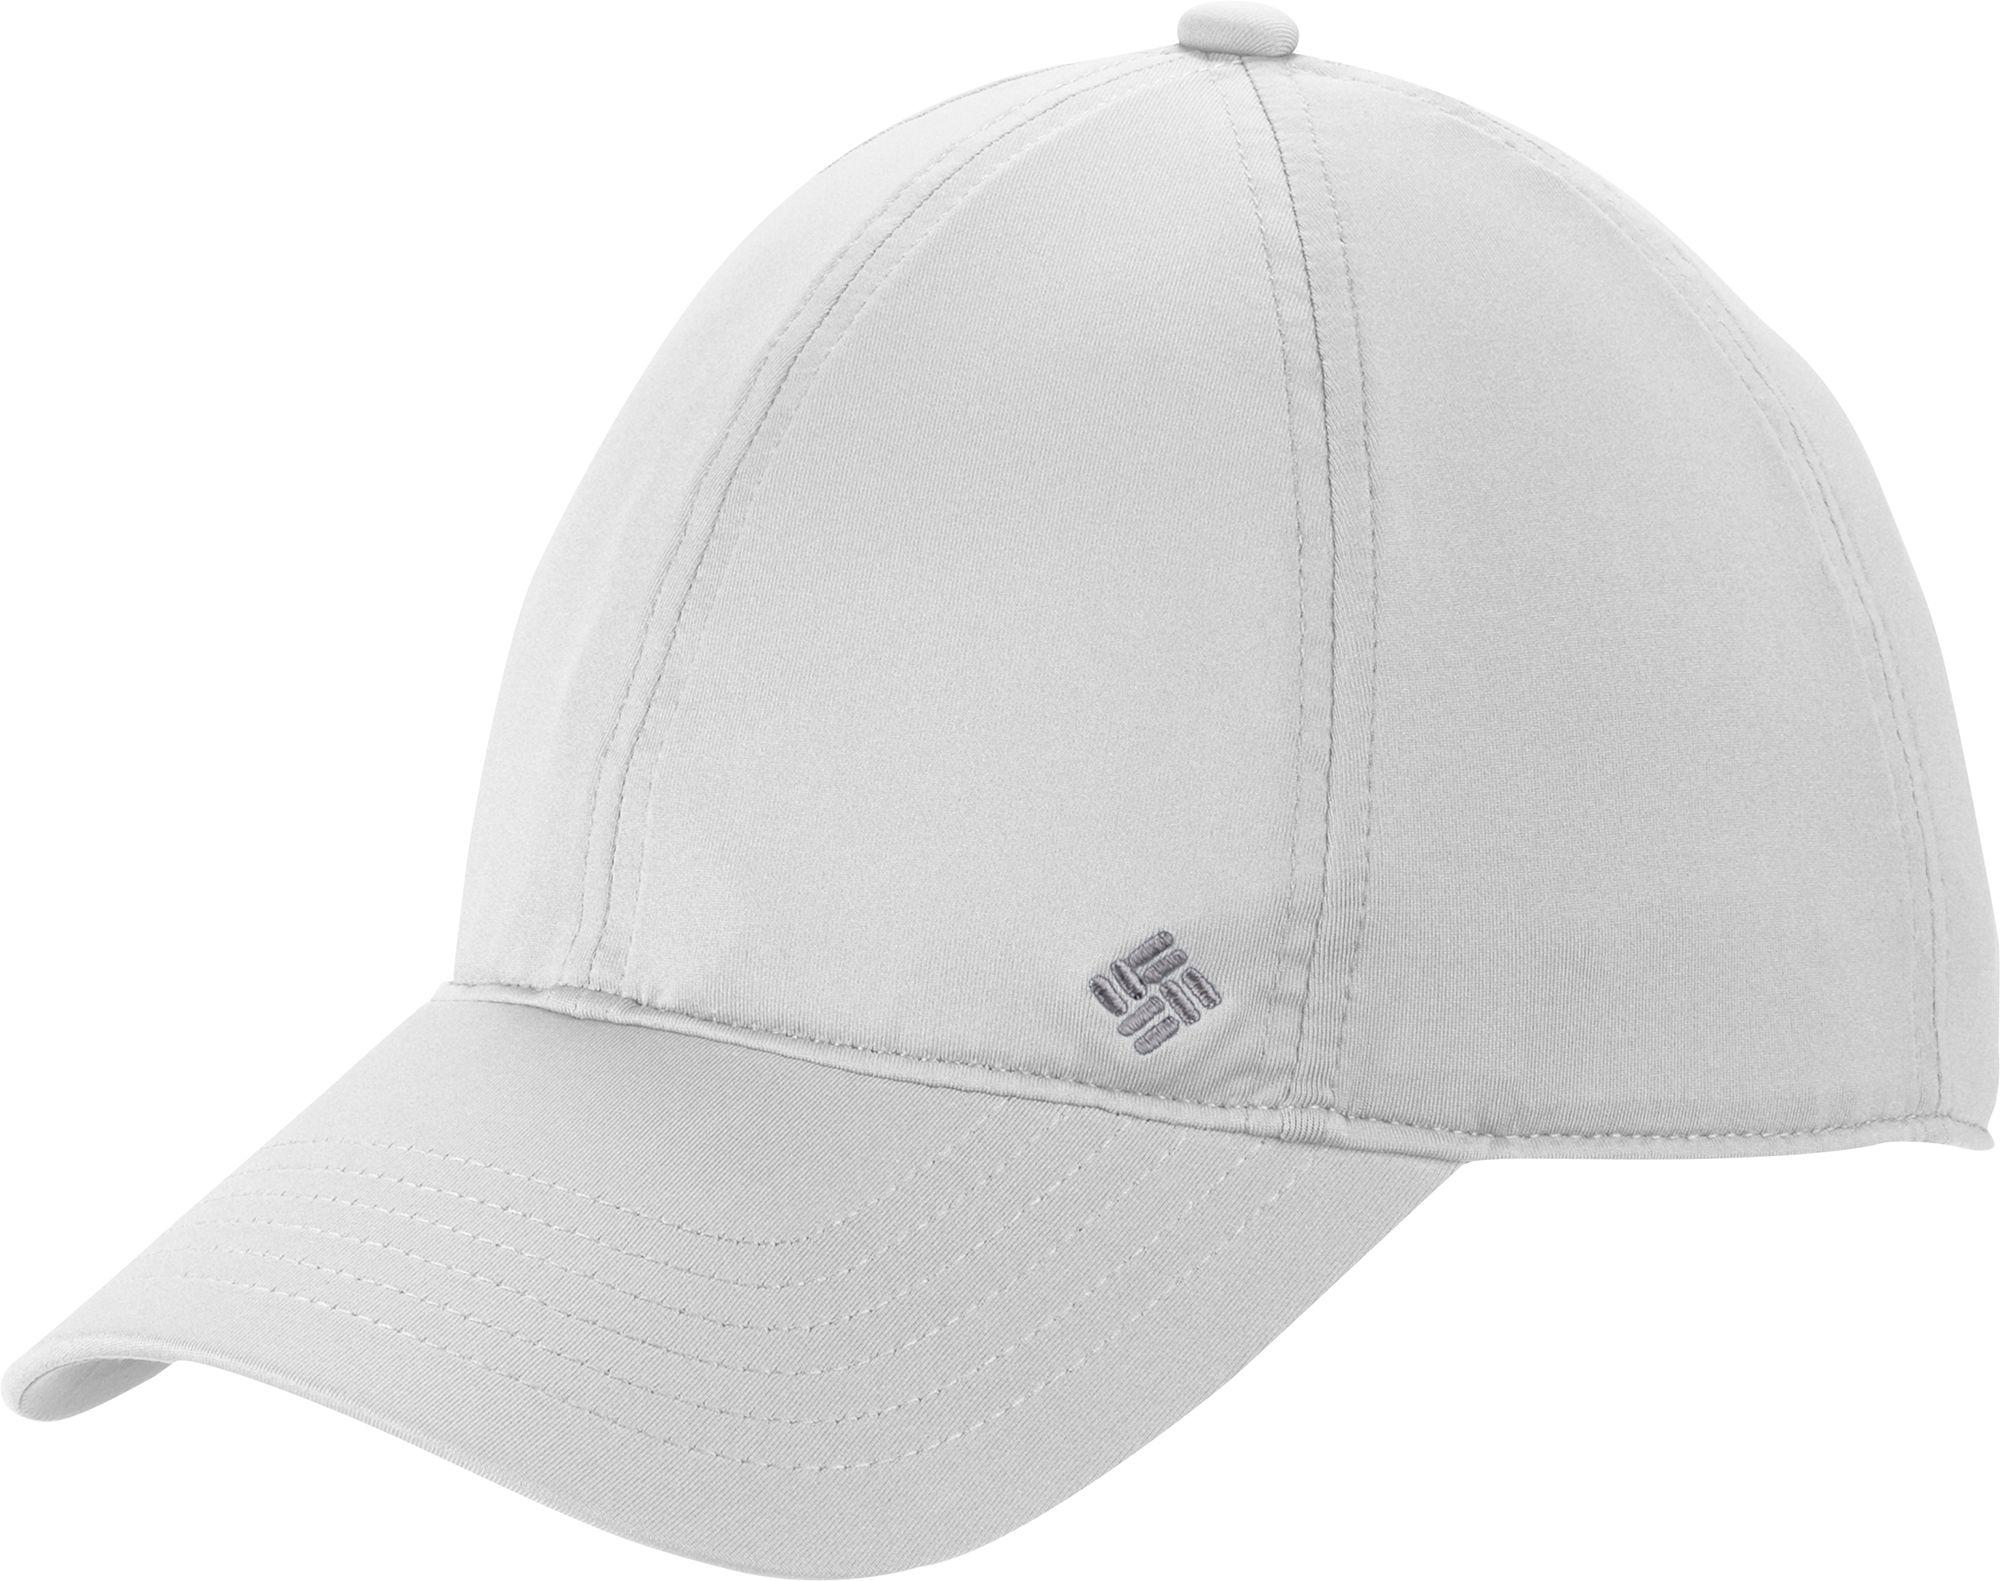 3ec56a0baa46b Lyst - Columbia Coolhead Ball Cap Iii in White for Men